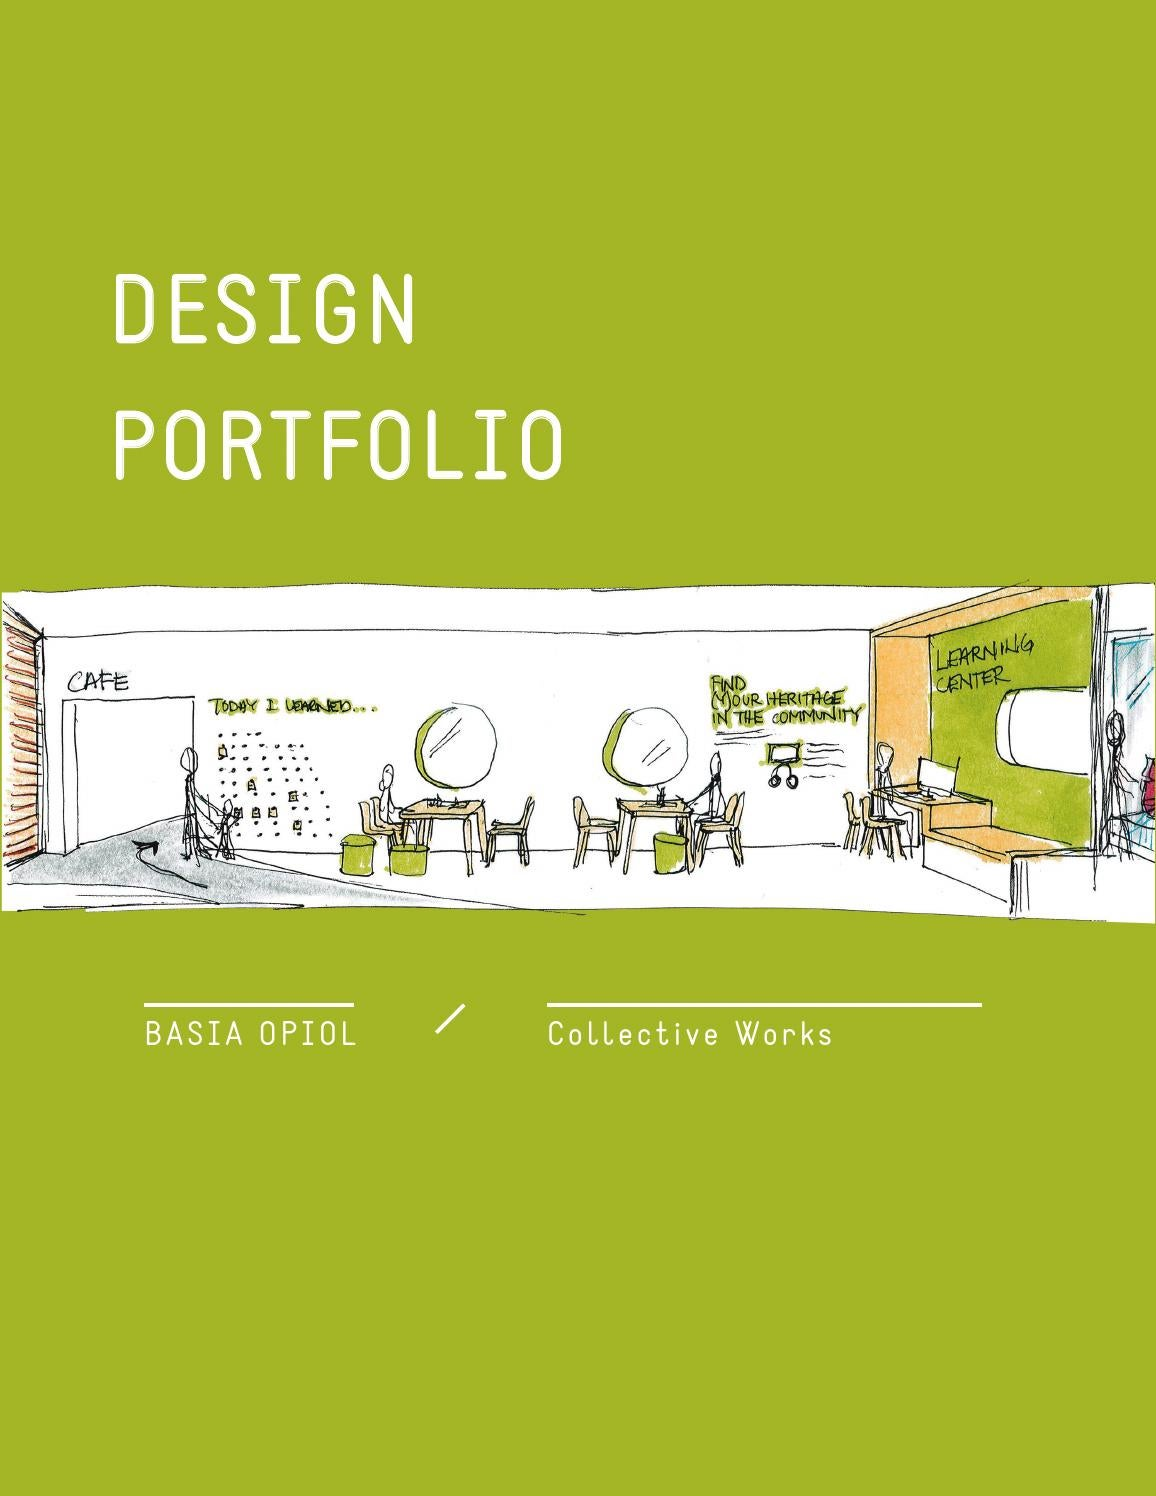 Design Portfolio By Basiaopiol